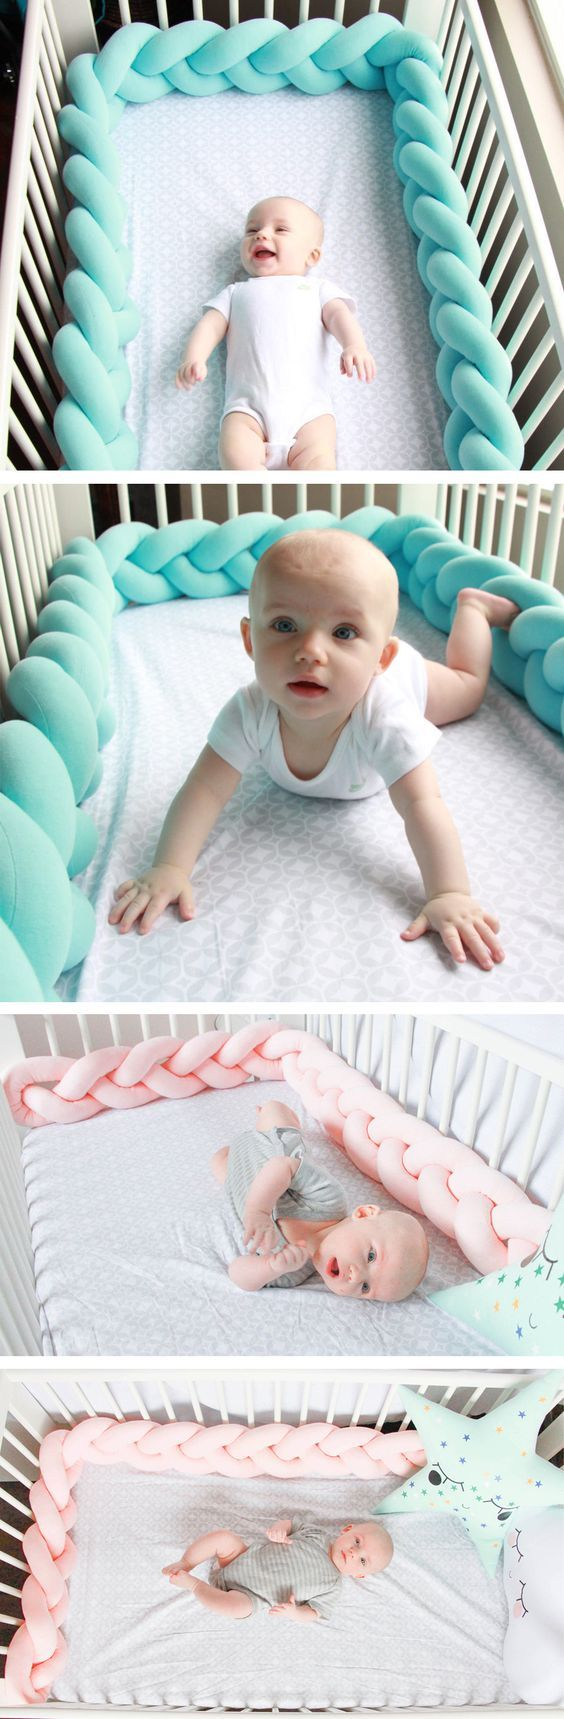 Pretty Braided Baby Crib Bumper